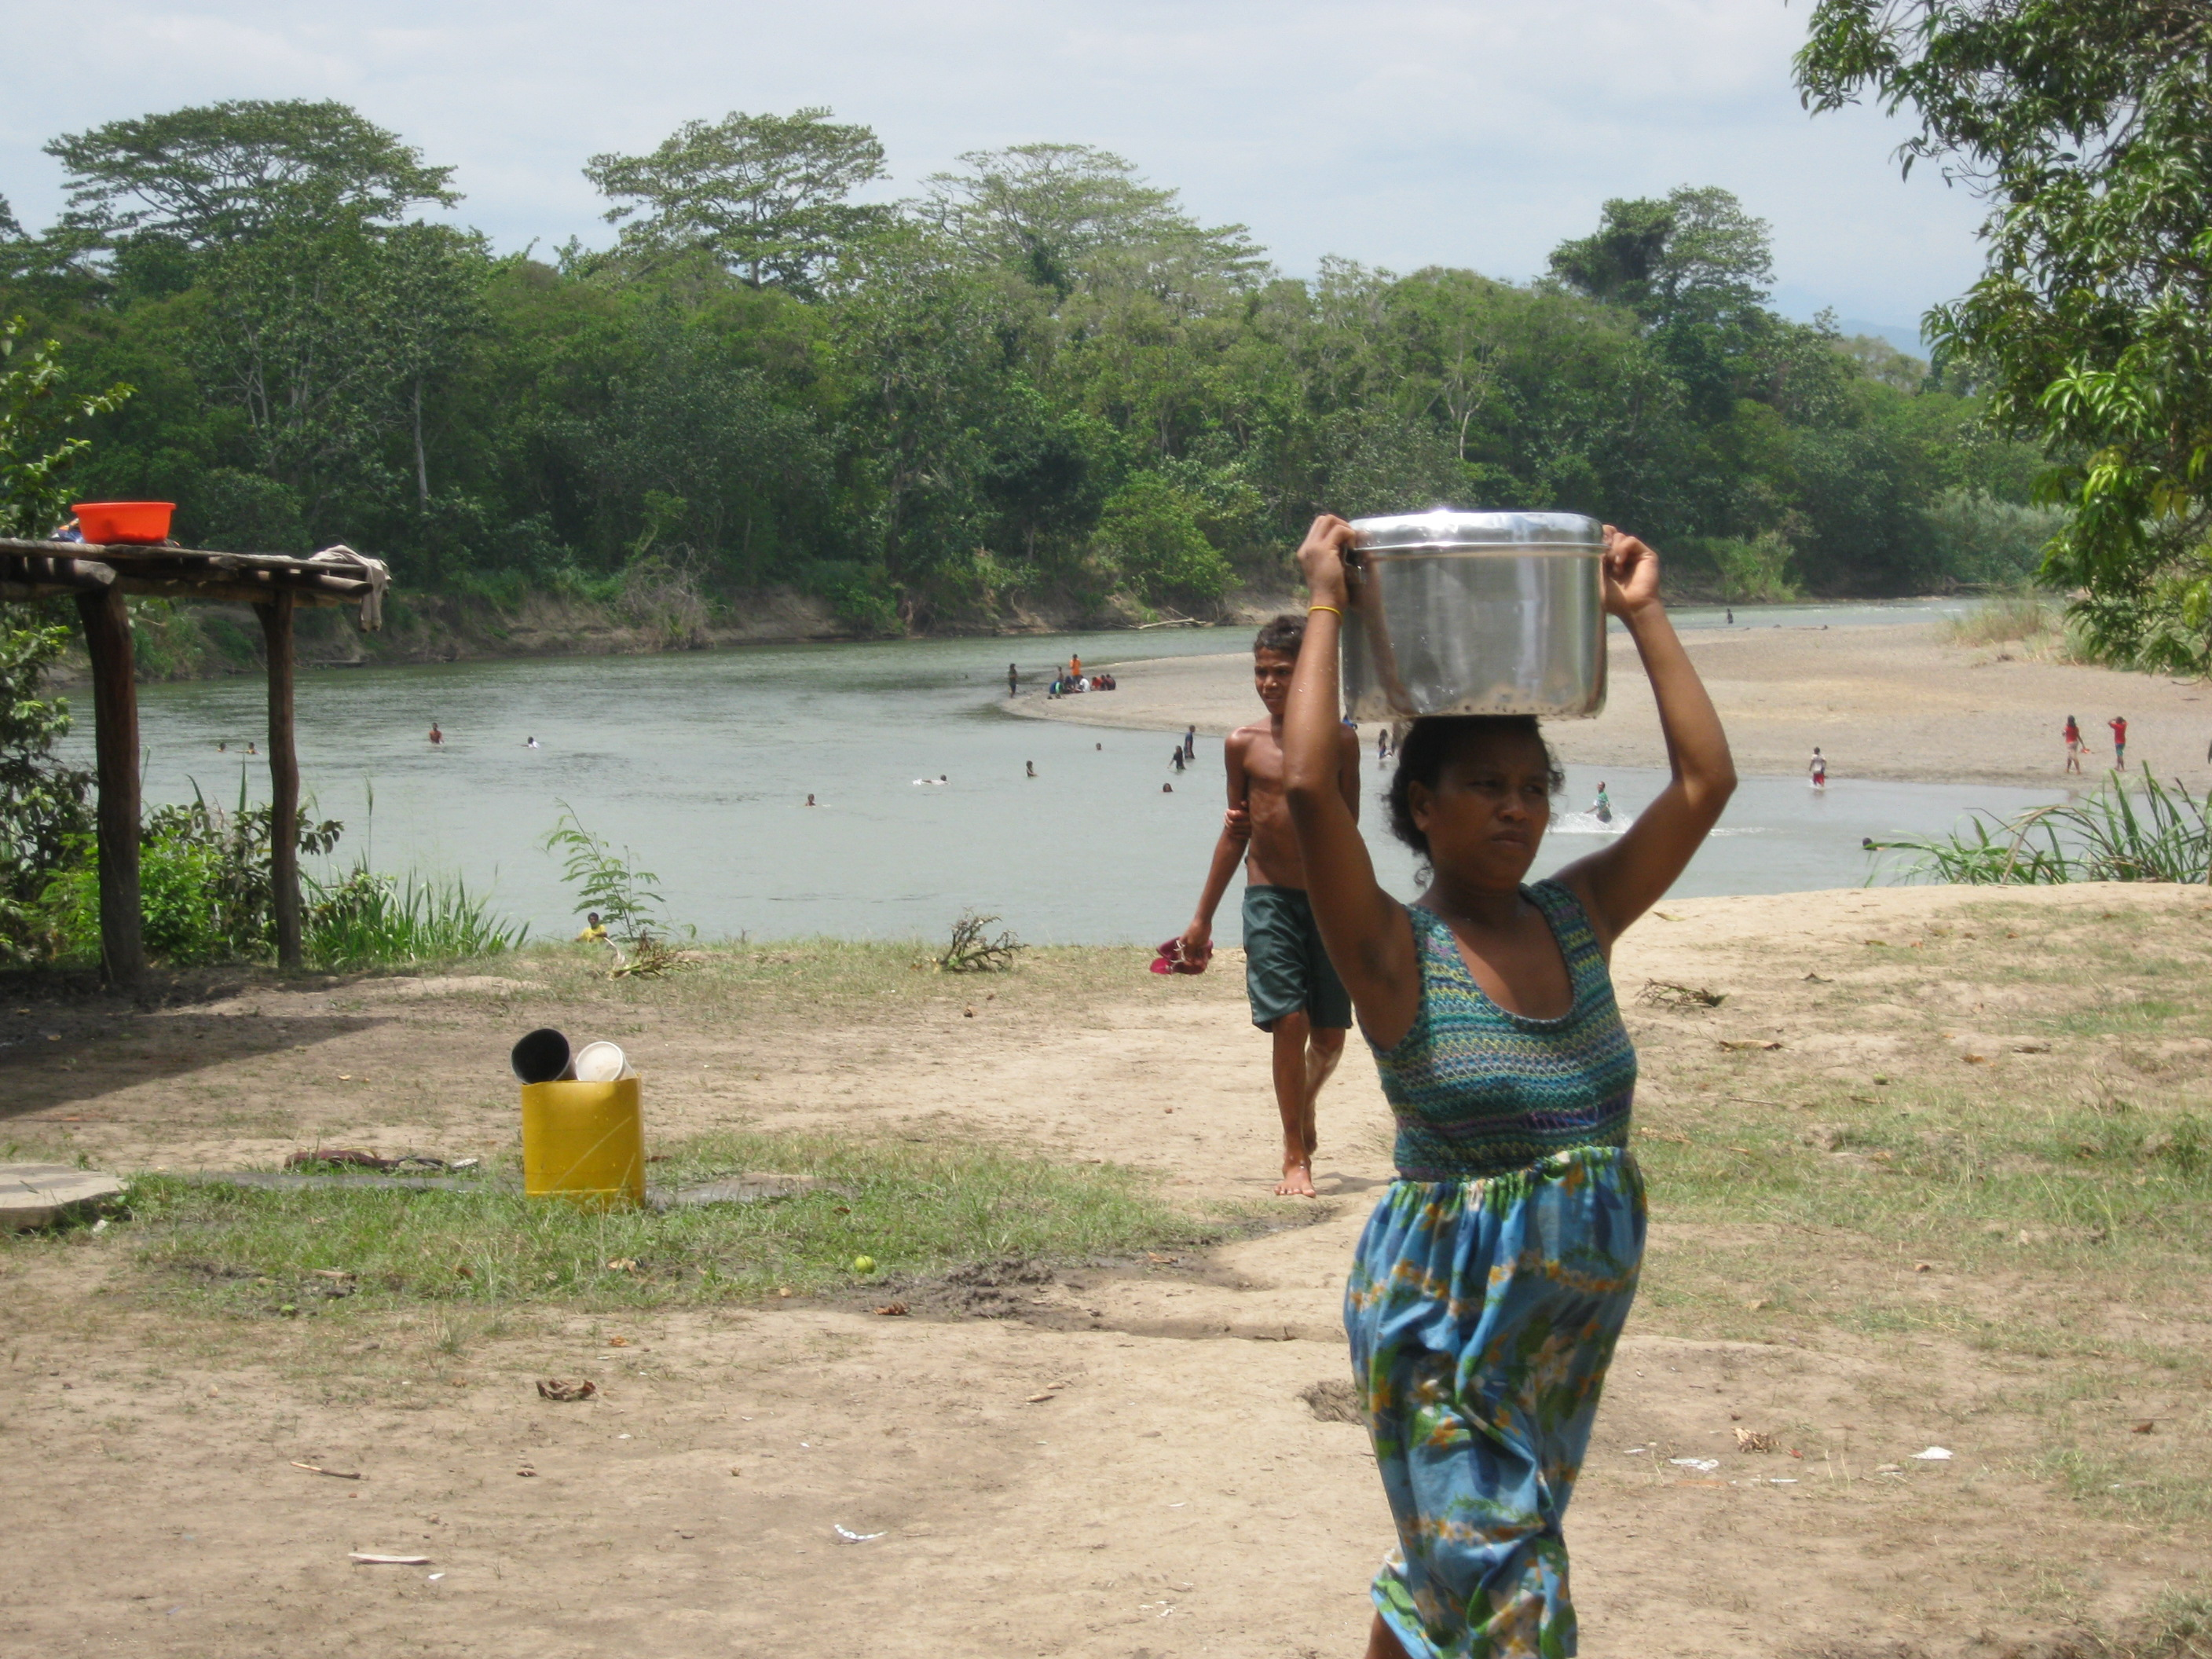 Rigo, Central Province of Papua New Guinea, hit by cholera in the latest 2009-2010 epidemic